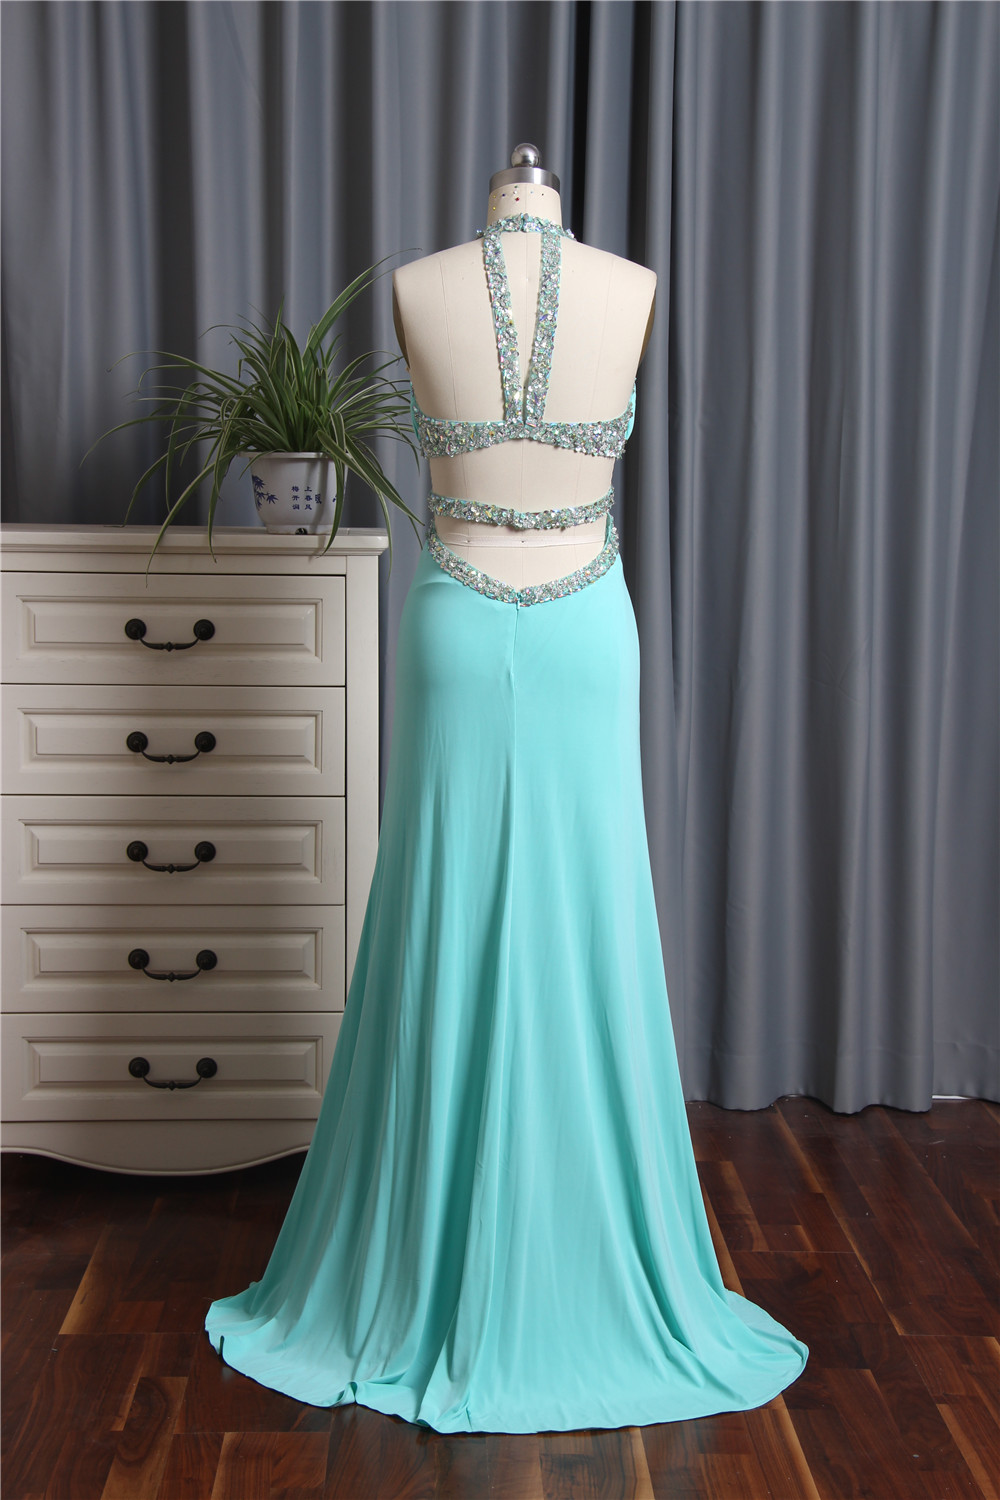 New Arrival 2017 Prom Dresses Long Mermaid Beaded Halter Neck ...